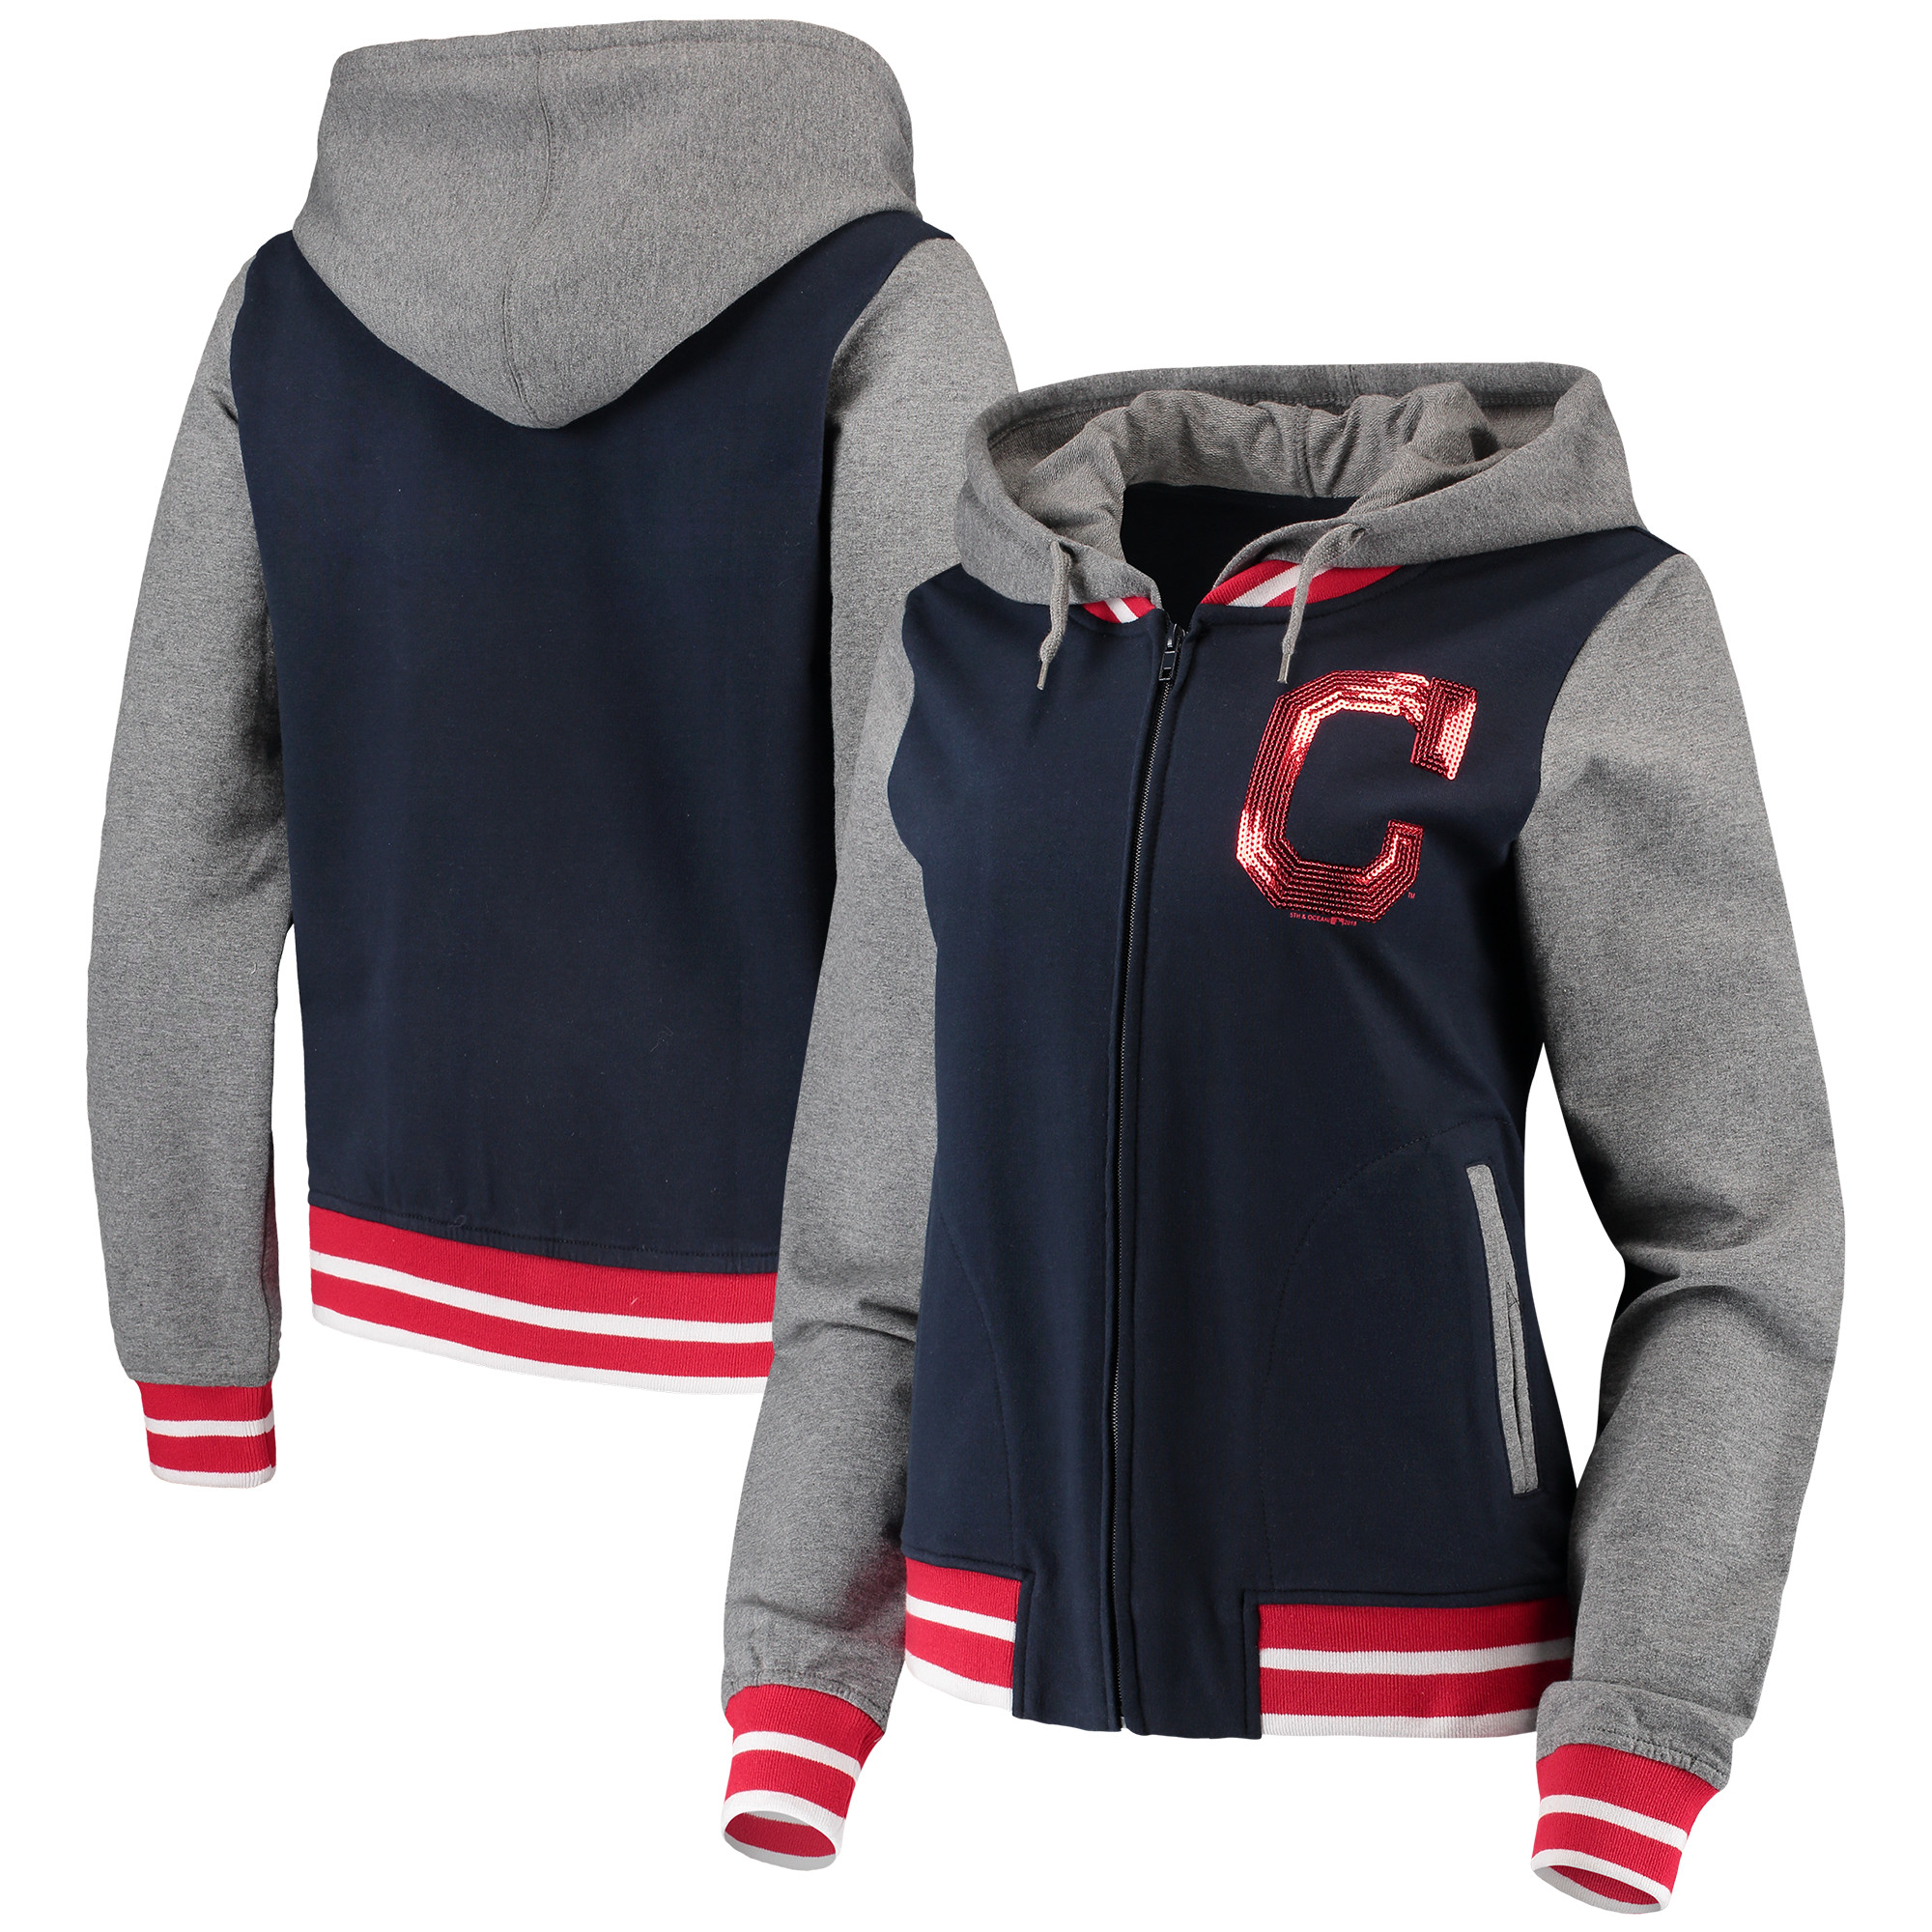 Cleveland Indians 5th & Ocean by New Era Women's French Terry Full-Zip Hoodie - Navy/Heathered Gray